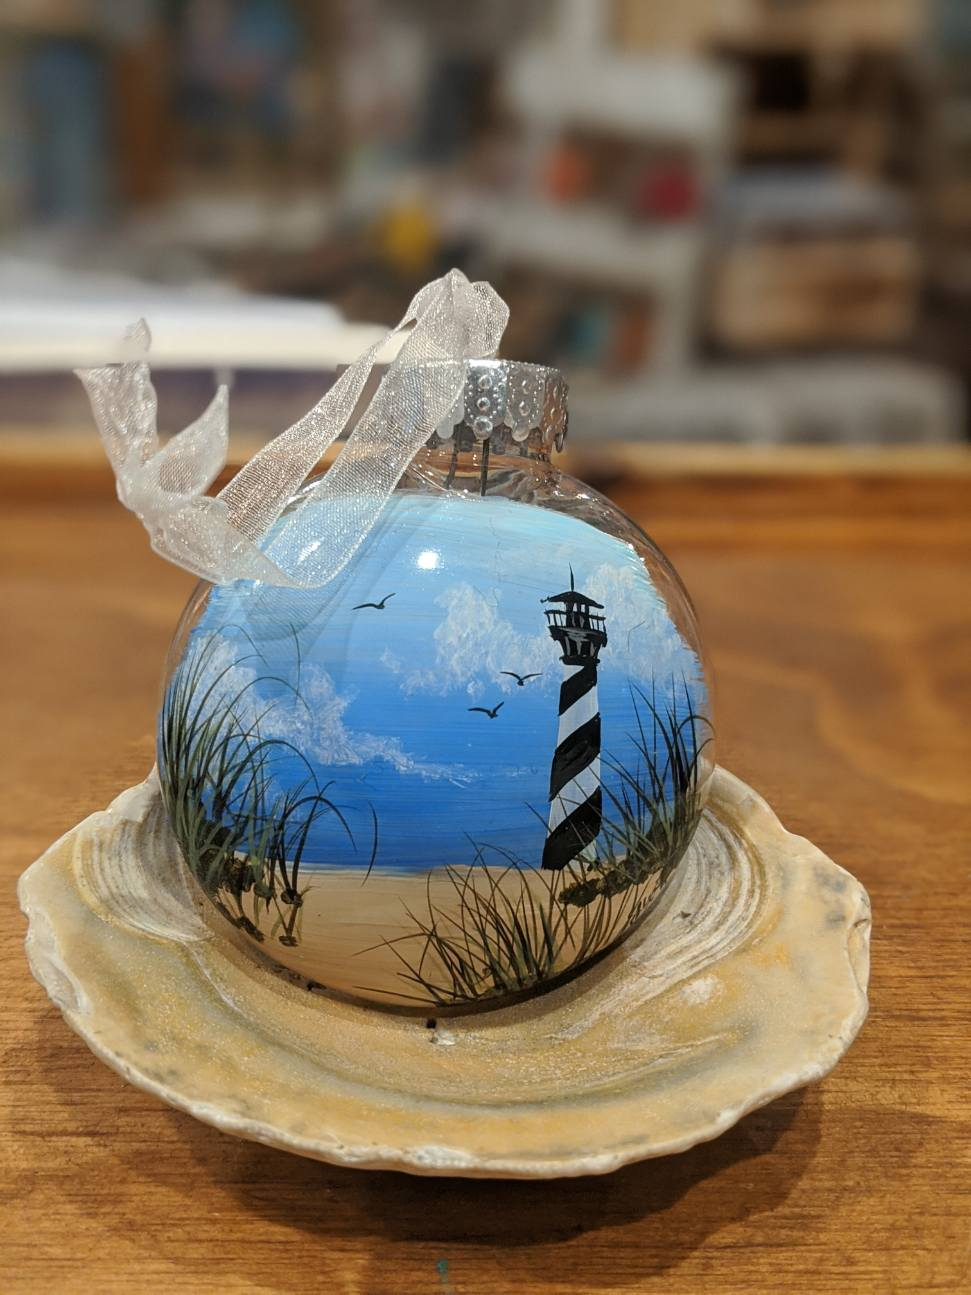 Hand-painted ornaments by Gretchen Hargis